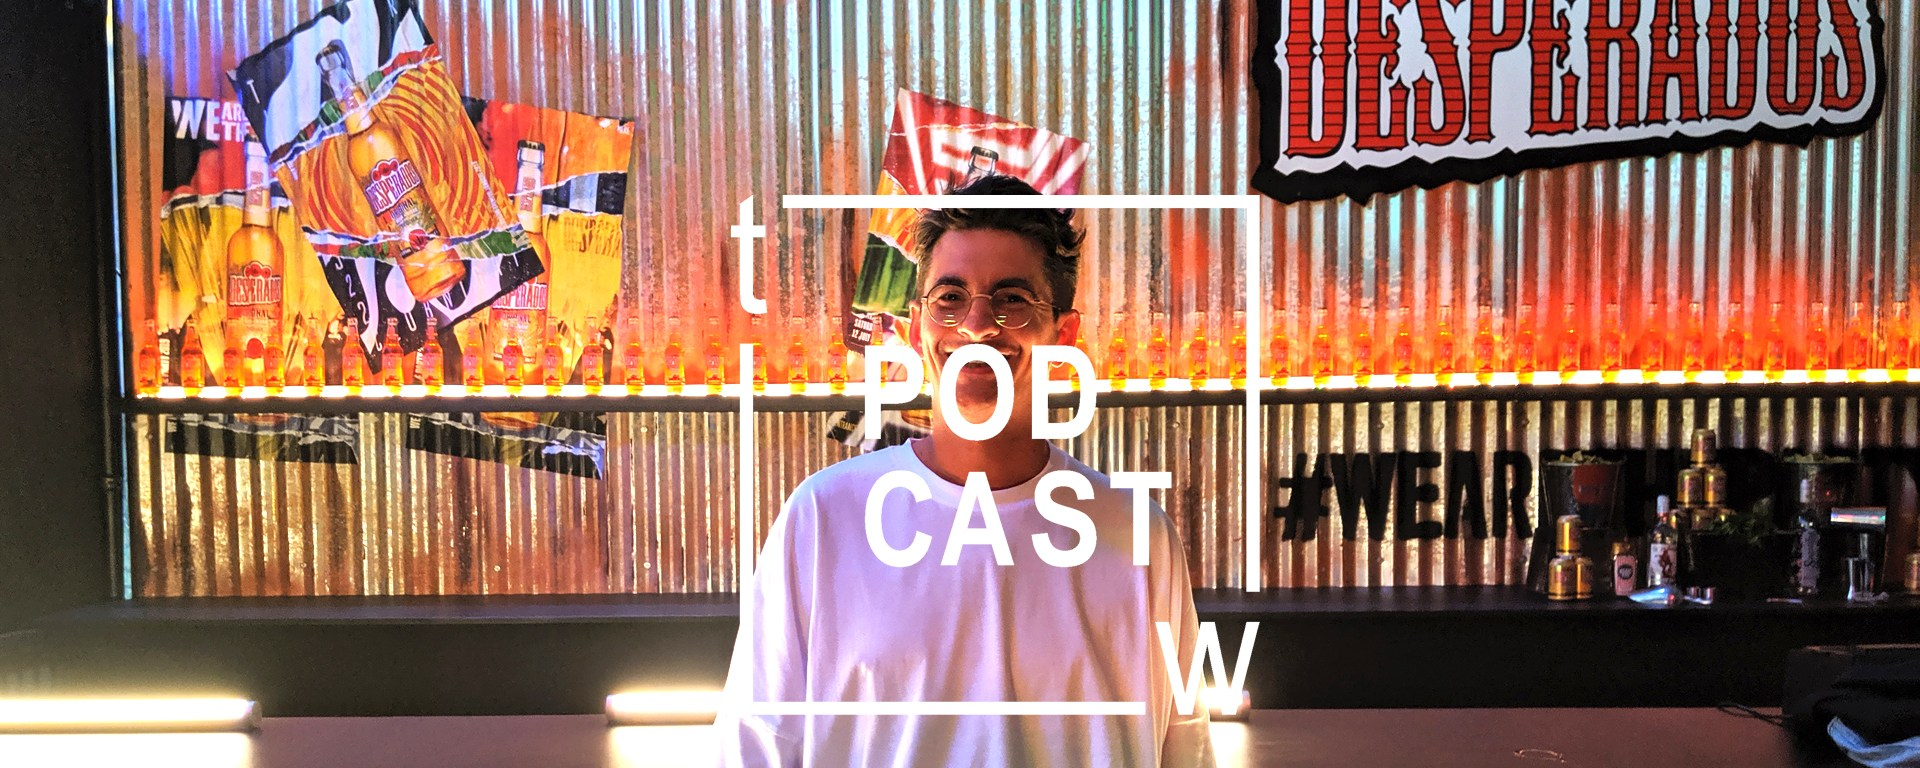 DJ-Skream_tunes&wings_Podcast_London